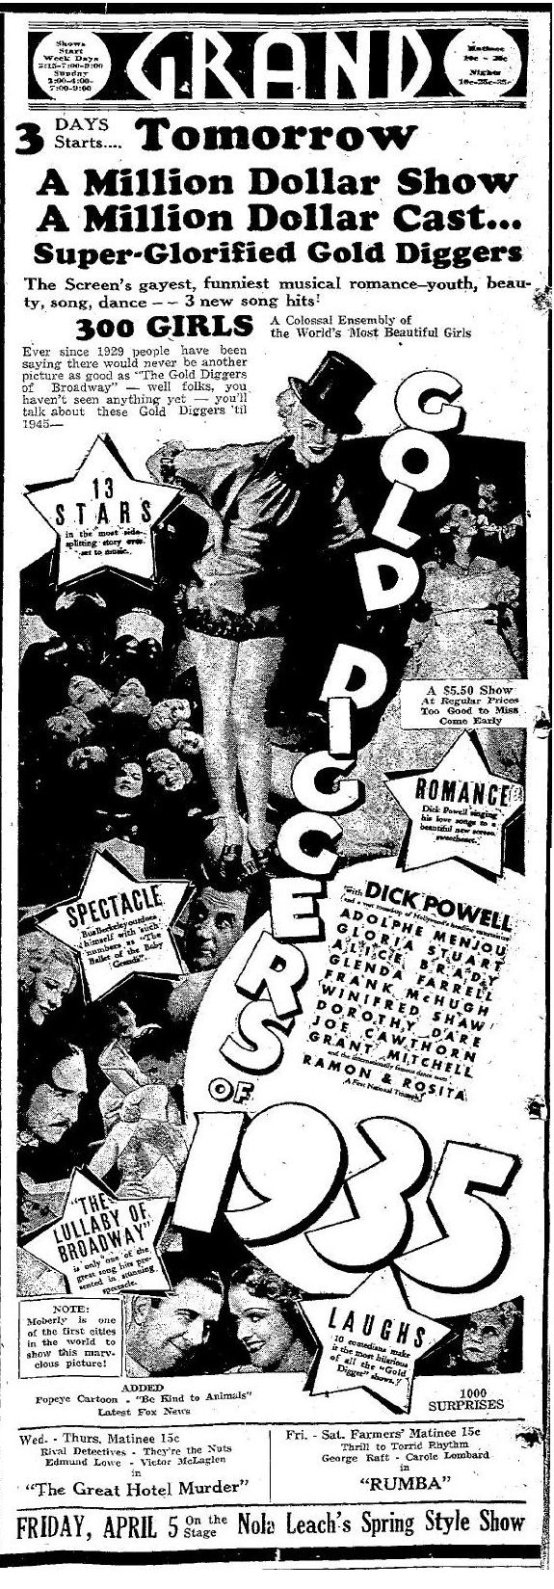 Gold Diggers of 1935 newspaper ad